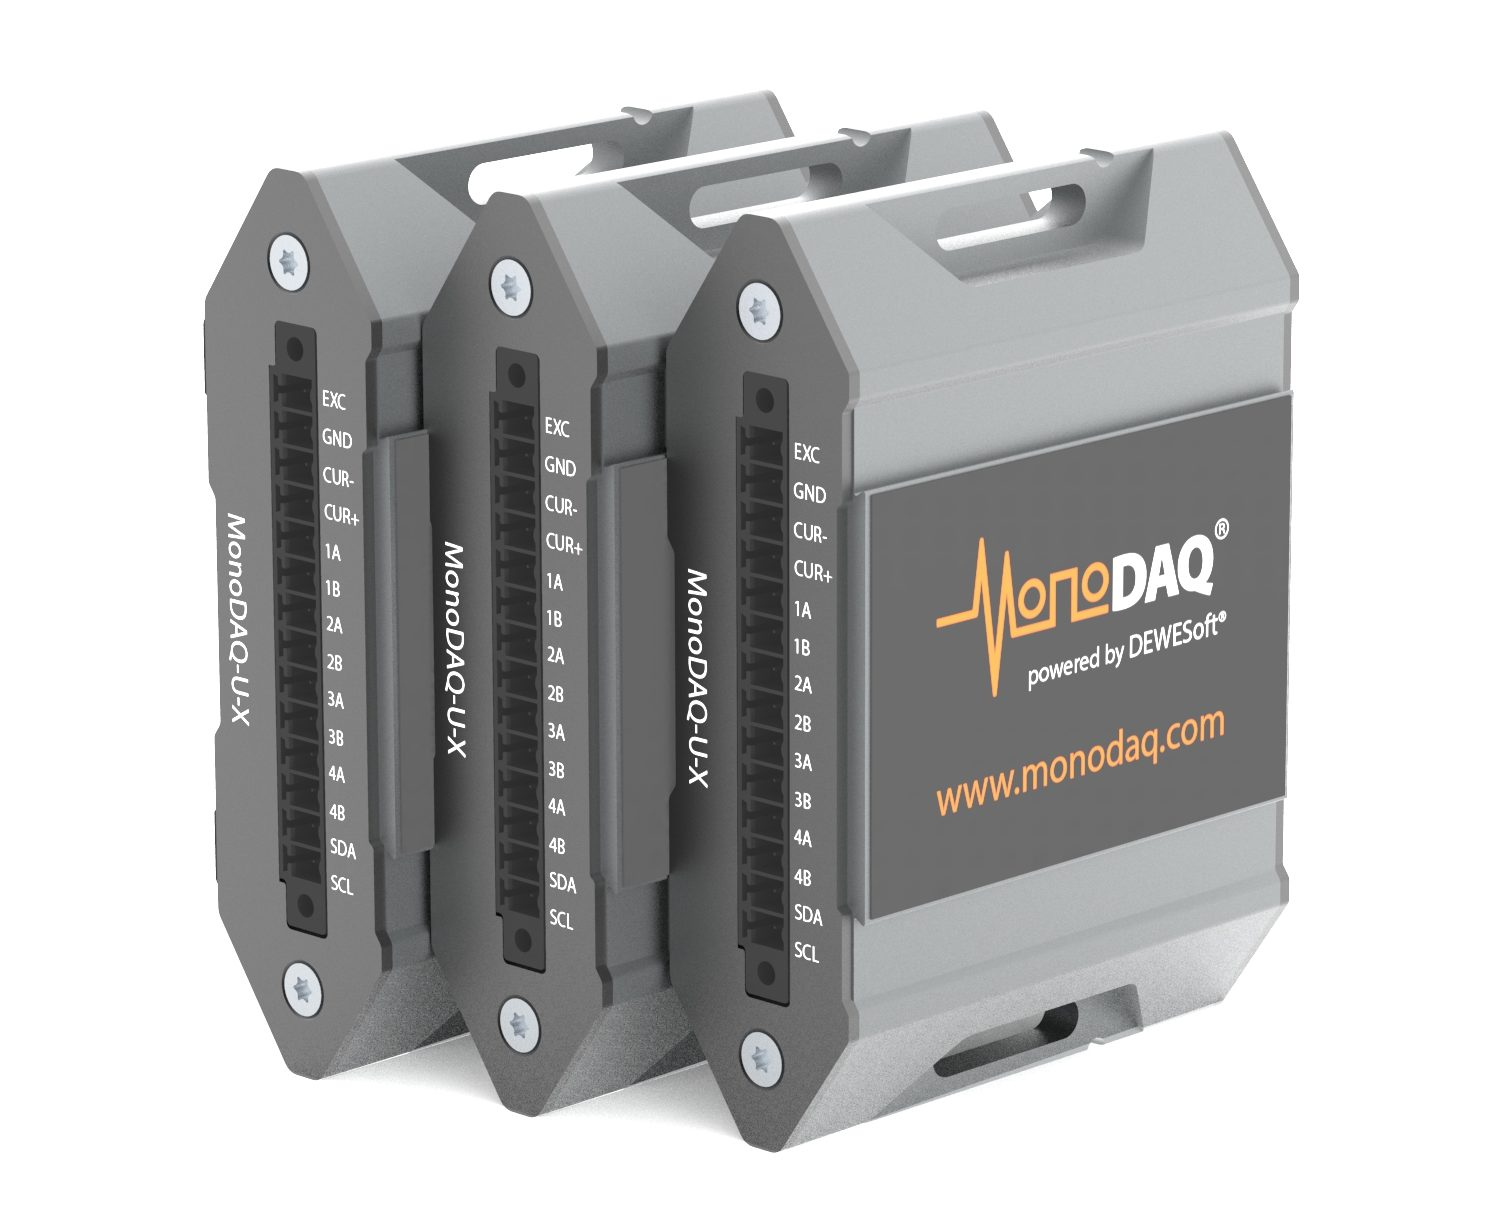 monodaq-u-x-data-acquisition-devices